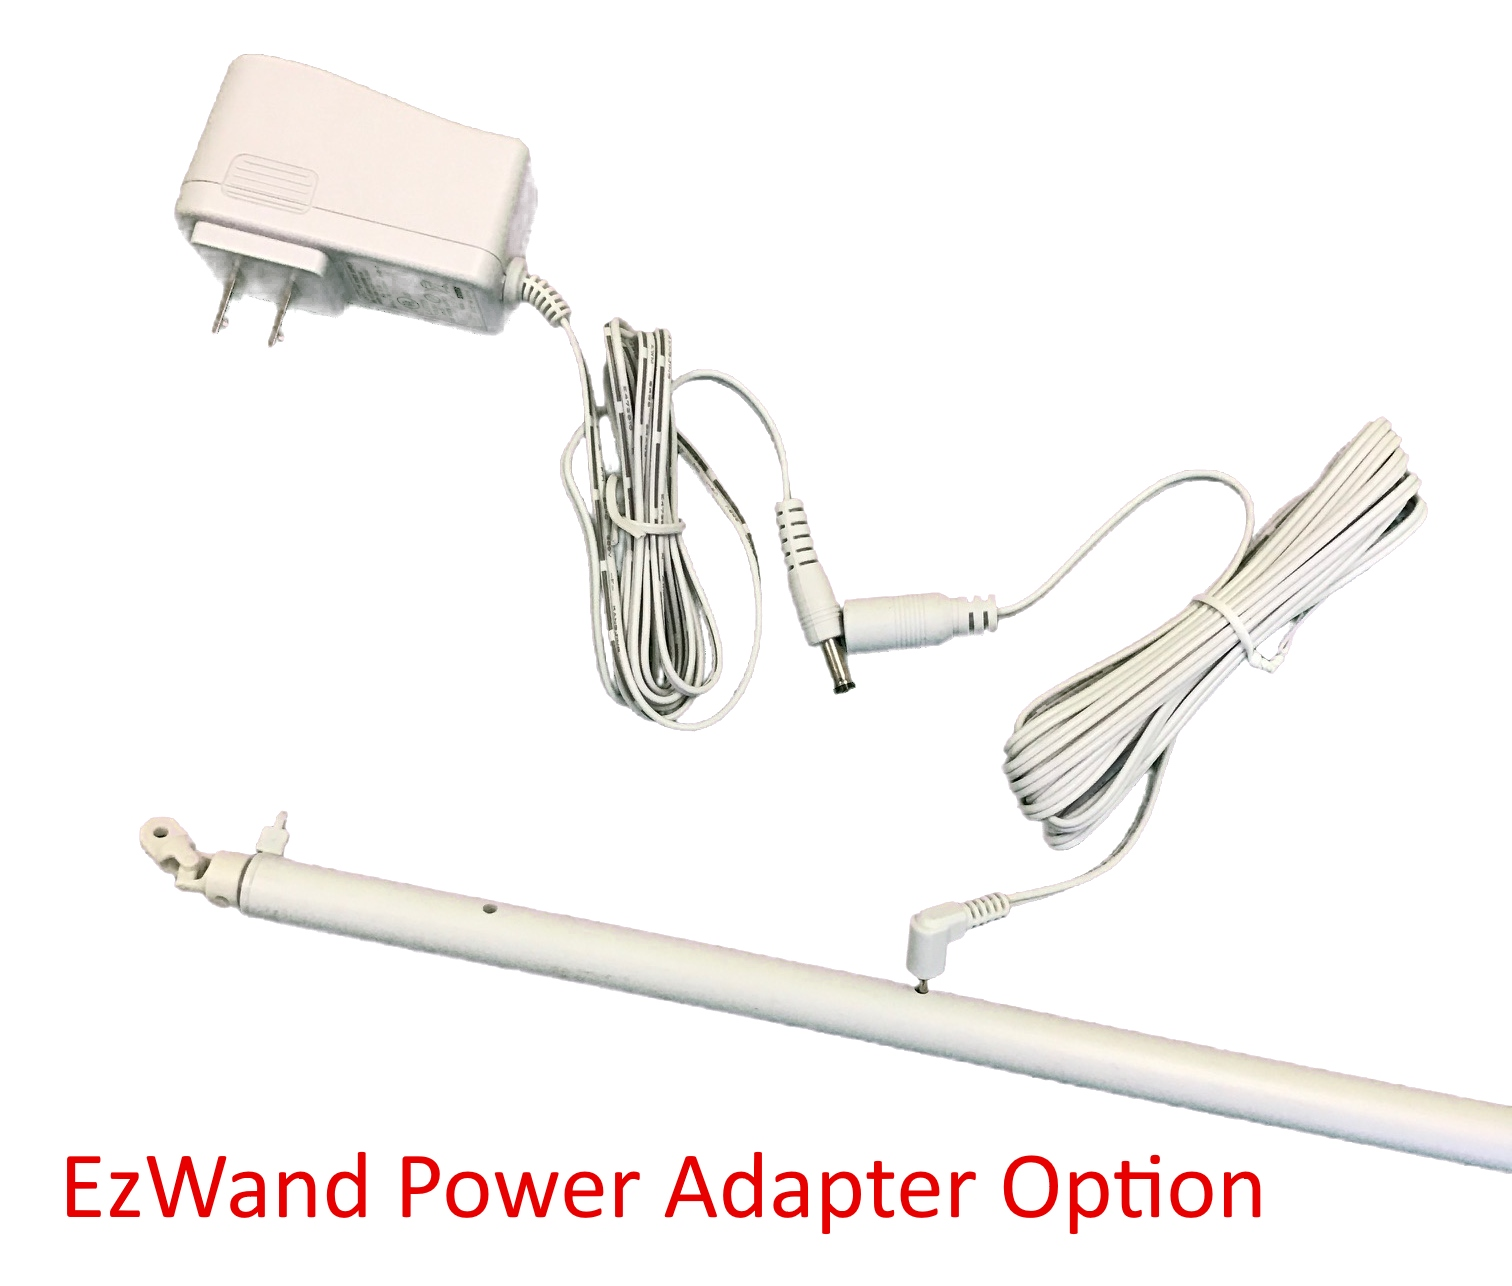 ezwand-power-adapter-option2.jpg